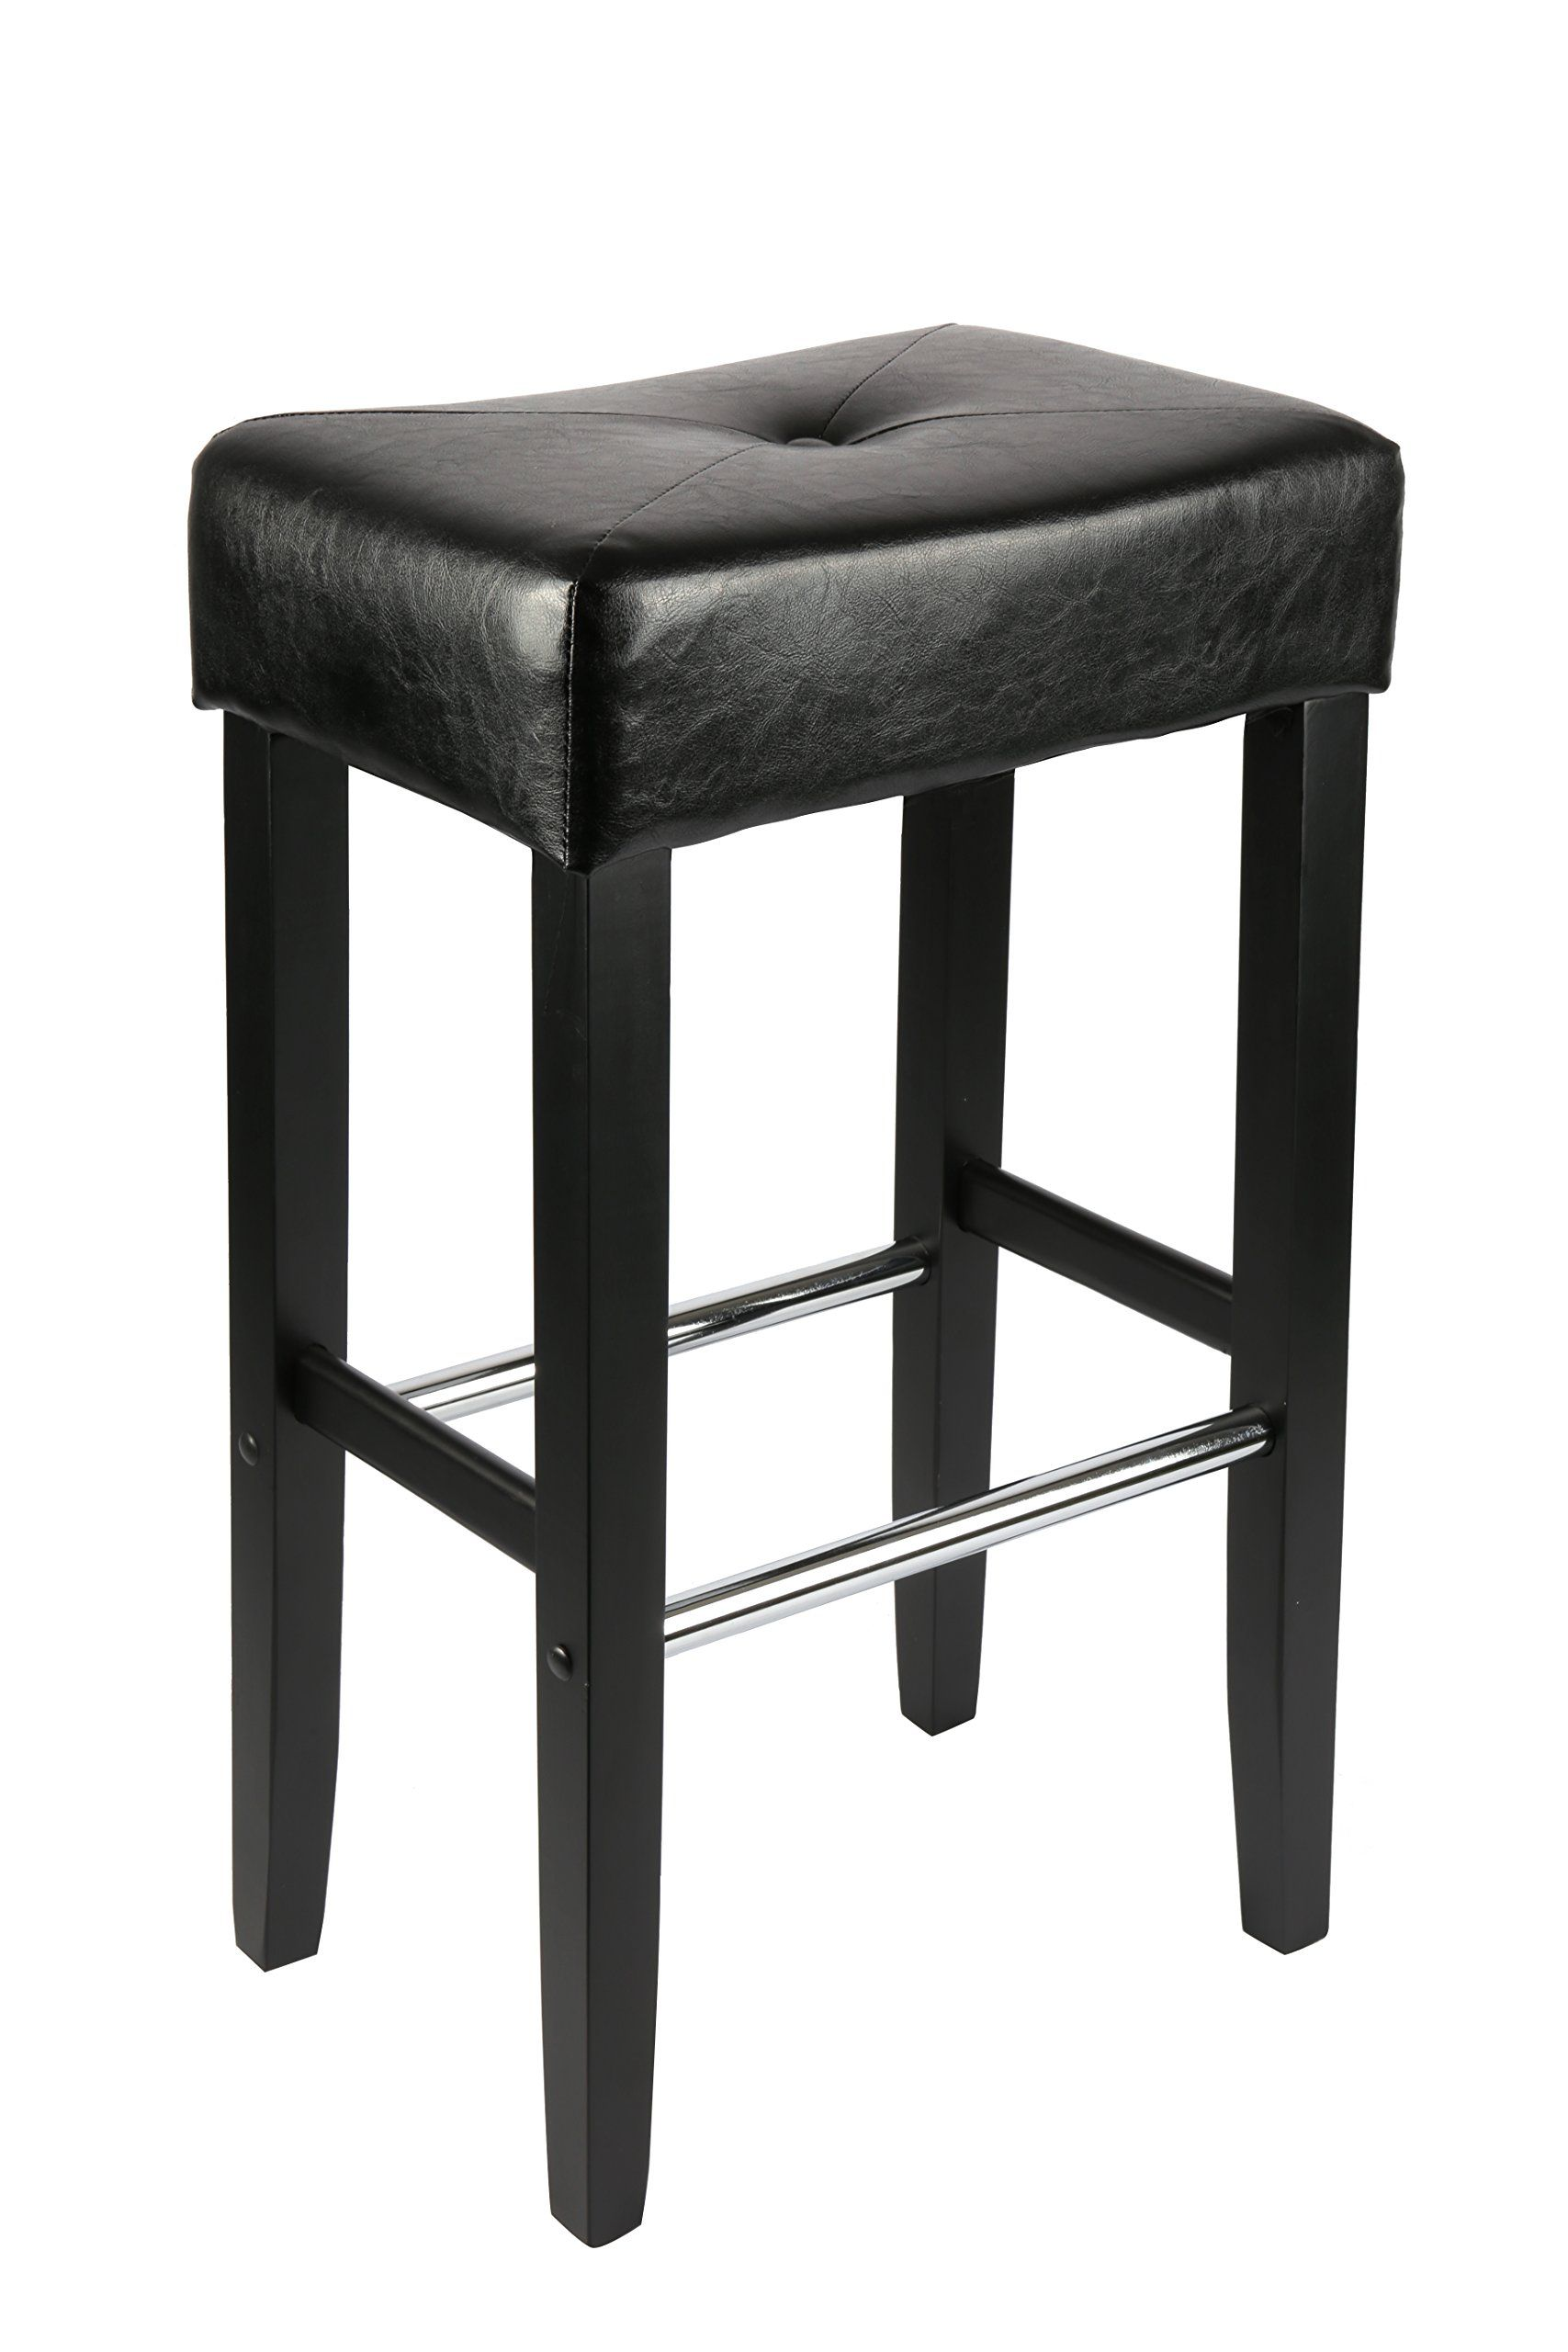 Lch Modern Bar Stool Backless Bonded Leather Pub Stools With Wood